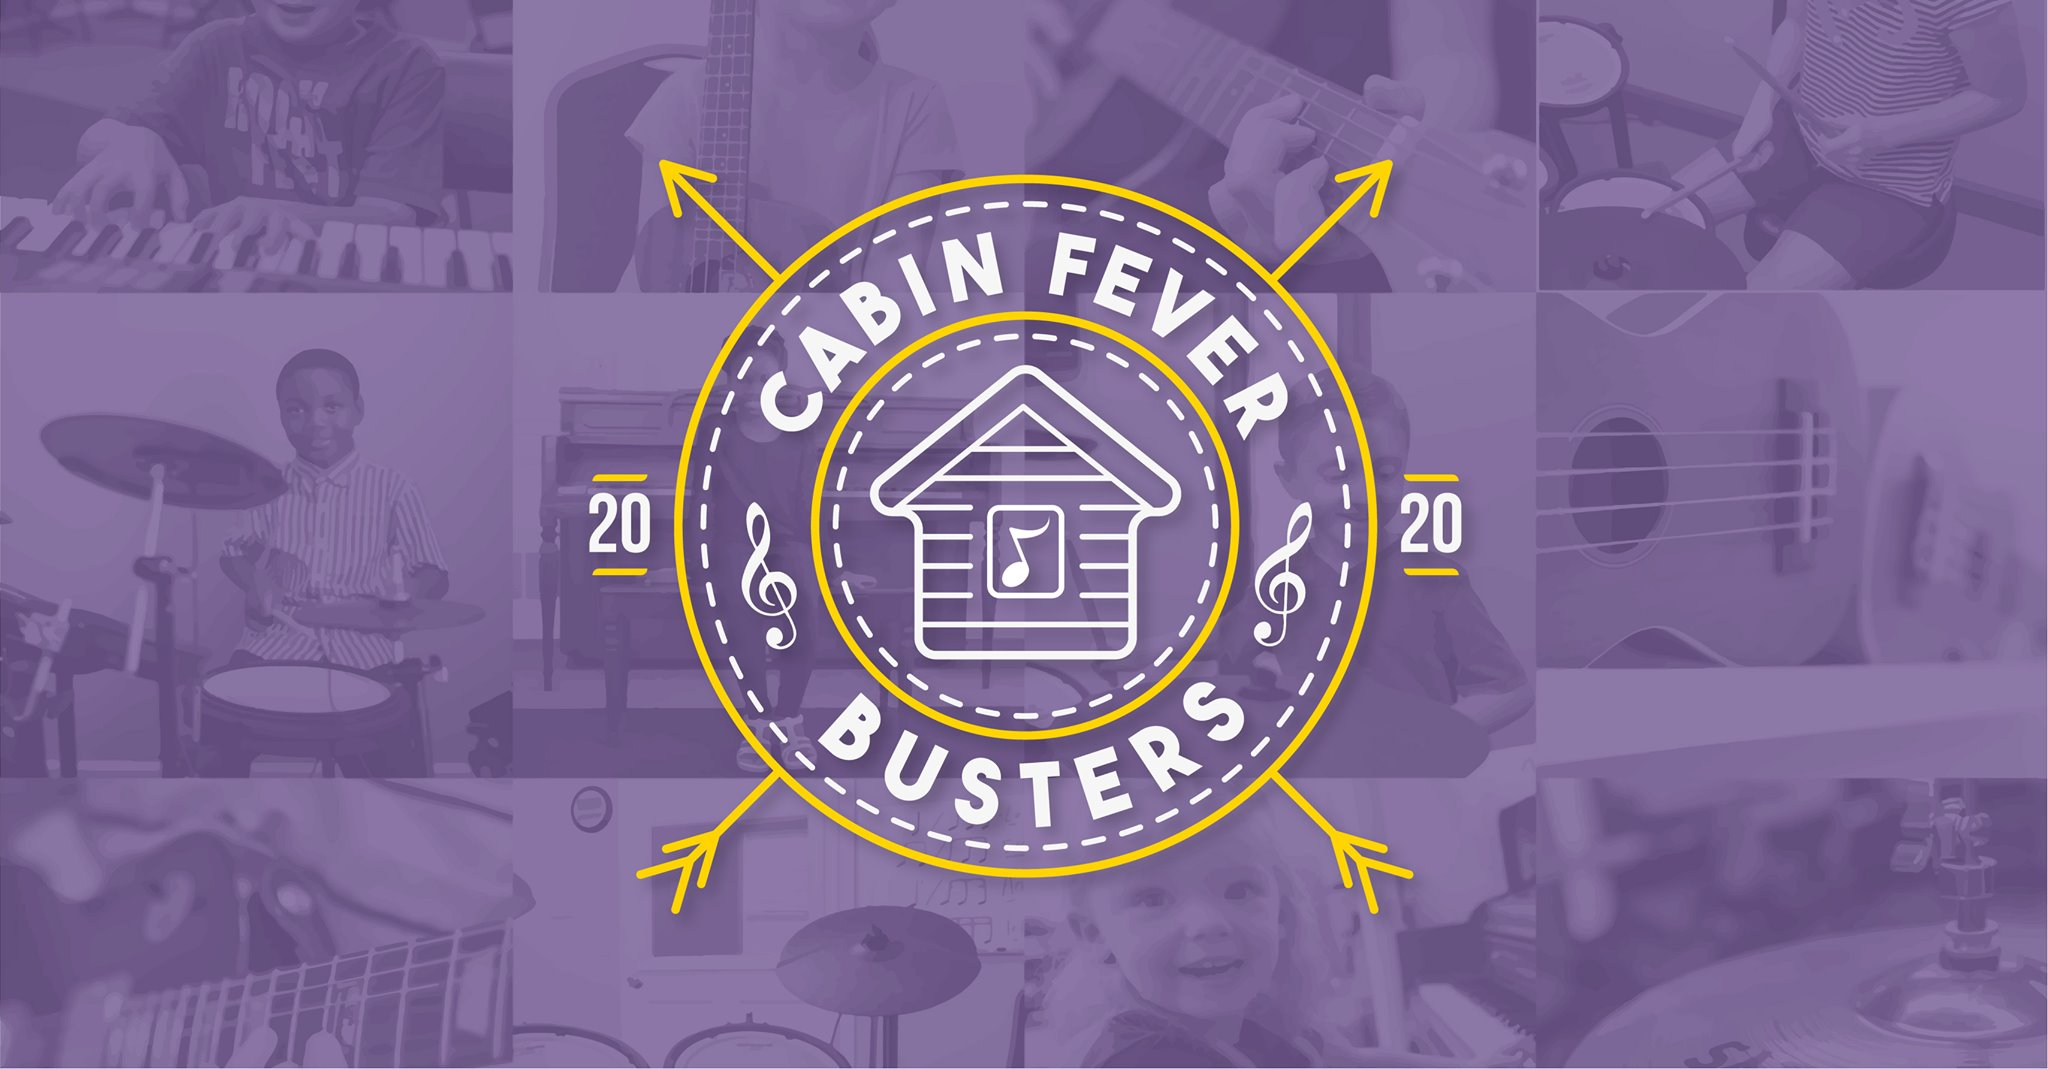 Music Cabin Fever Busters